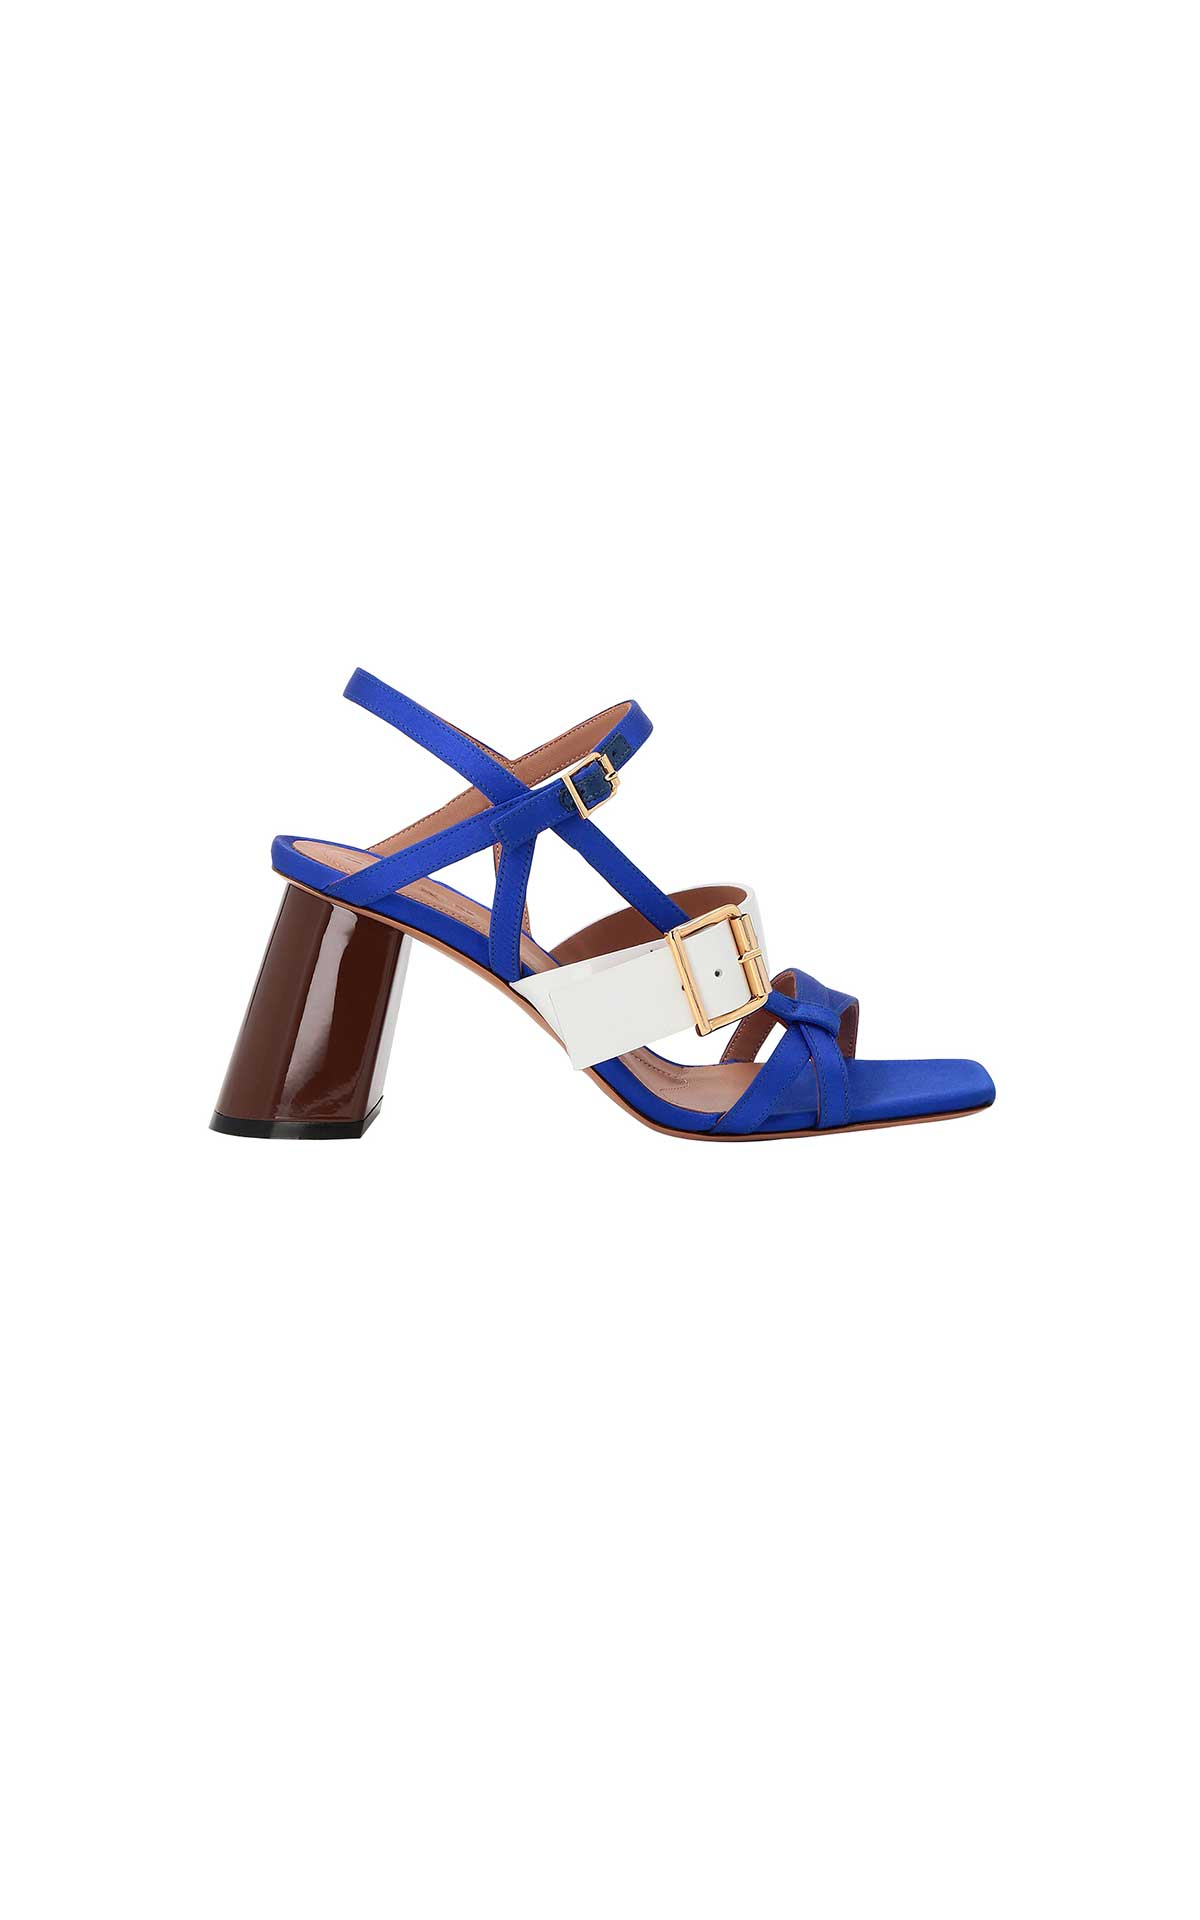 Blue and white heeled sandal for woman Marni